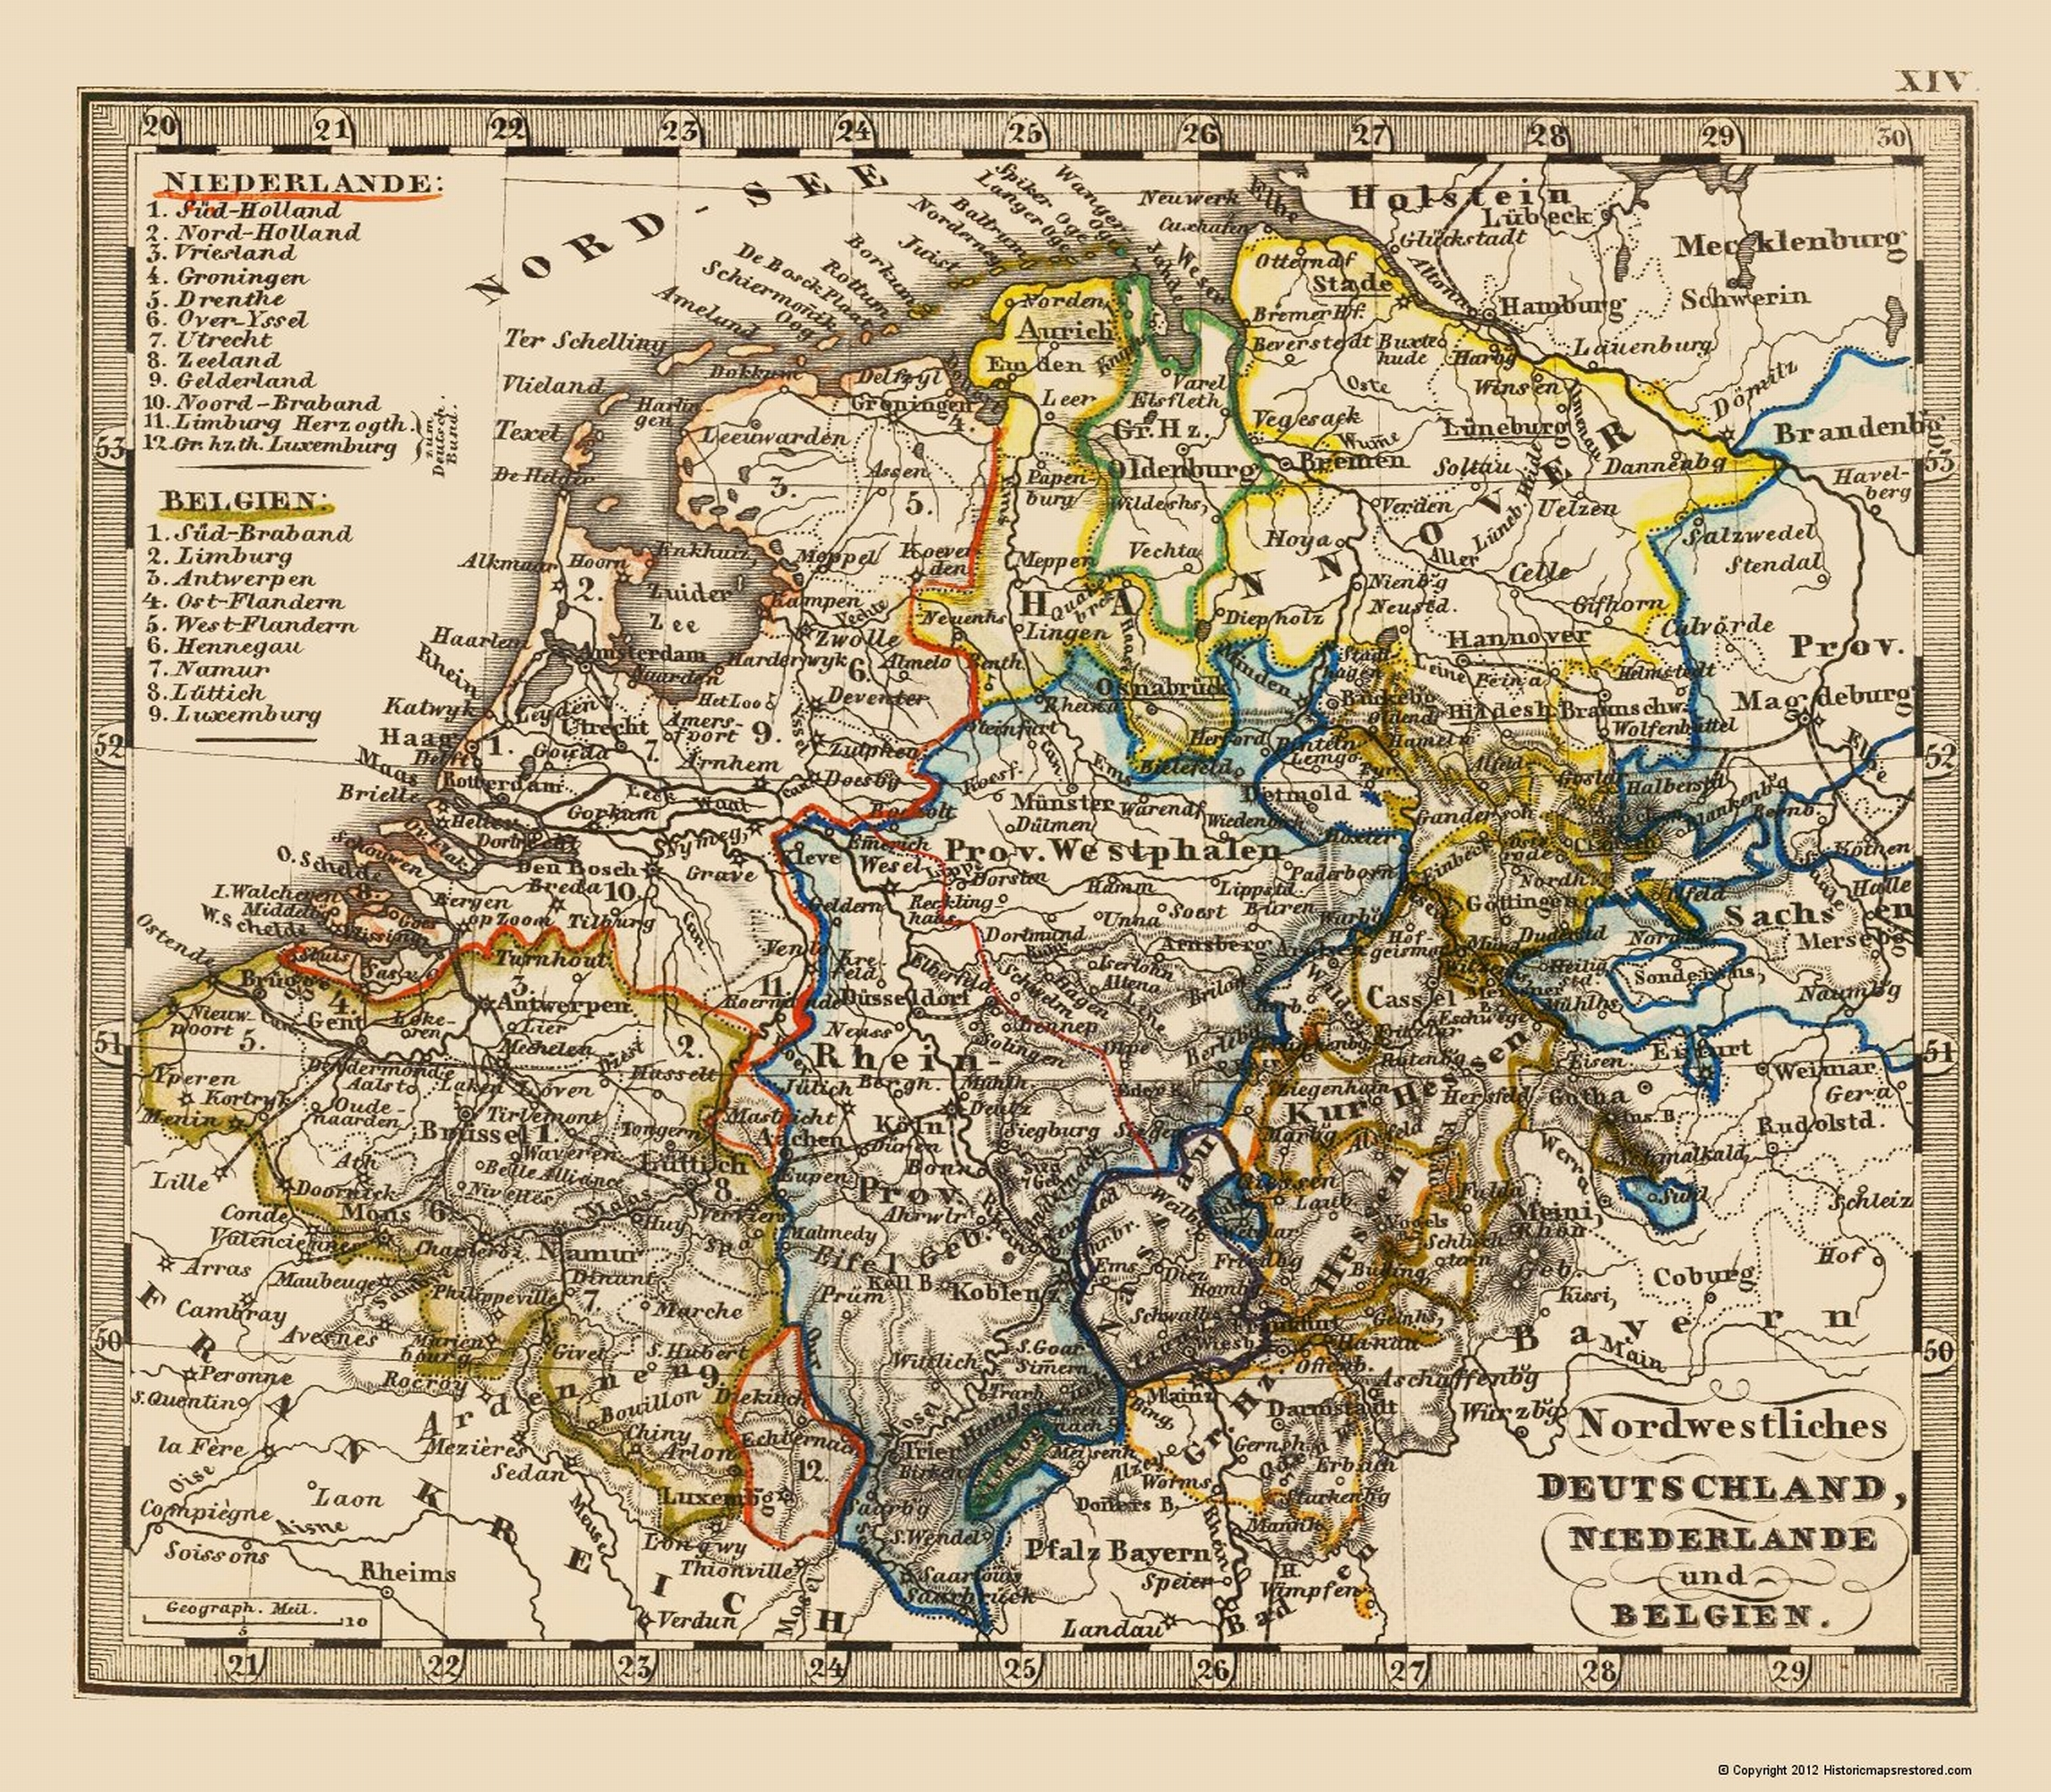 Map Of Germany And The Netherlands.Old Europe Map Northwest Germany Netherlands Benelux 1852 23 X 26